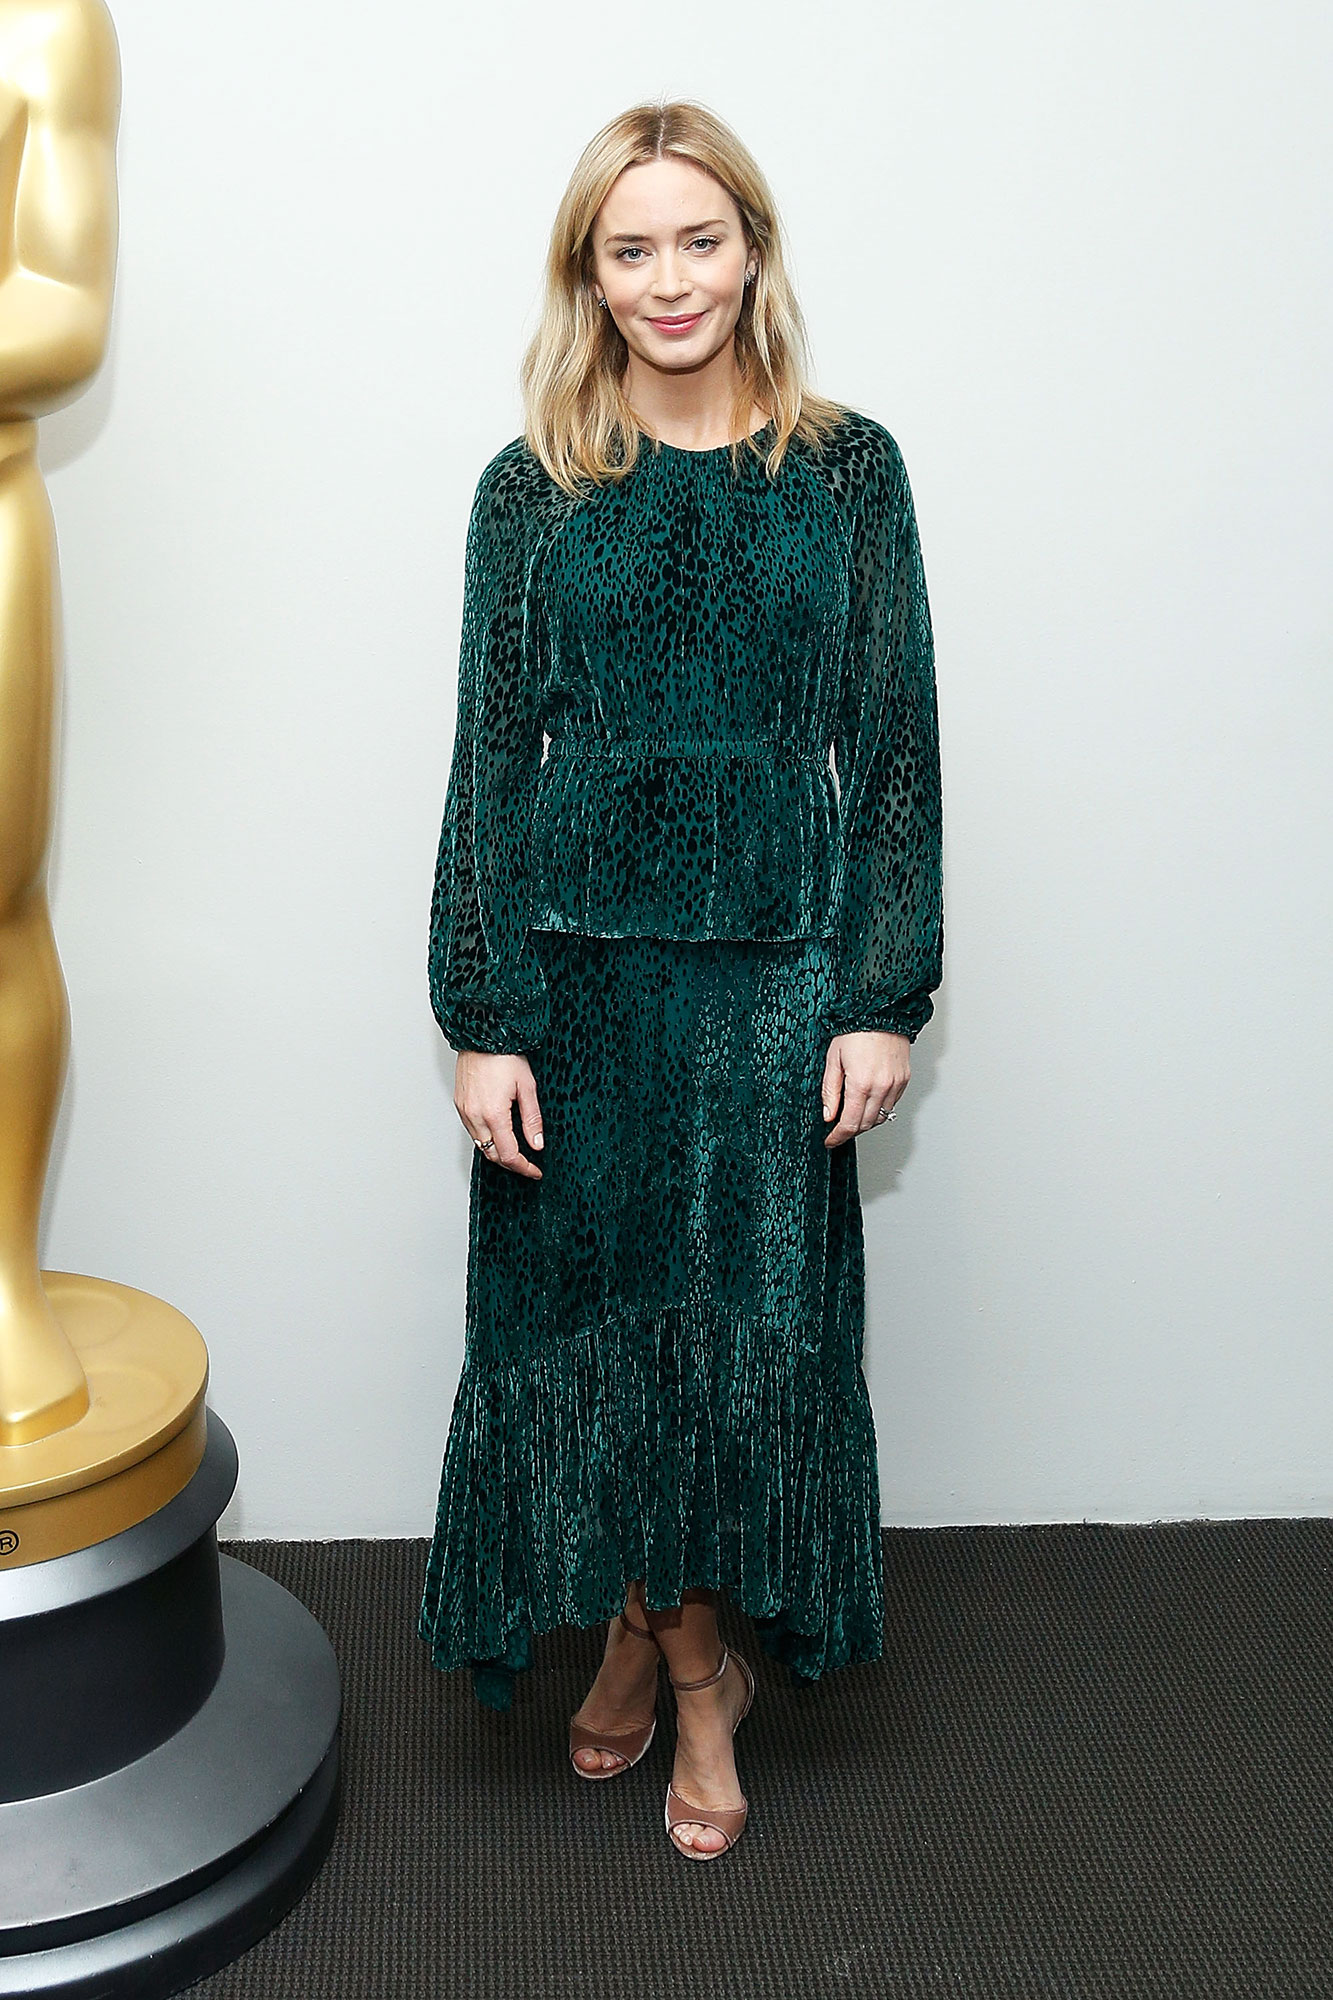 Actor Emily Blunt attends The Academy of Motion Pictures Arts and Sciences - In a $745 A.L.C. velvet leopard-print dress and $675 Jimmy Choo peep-toes.